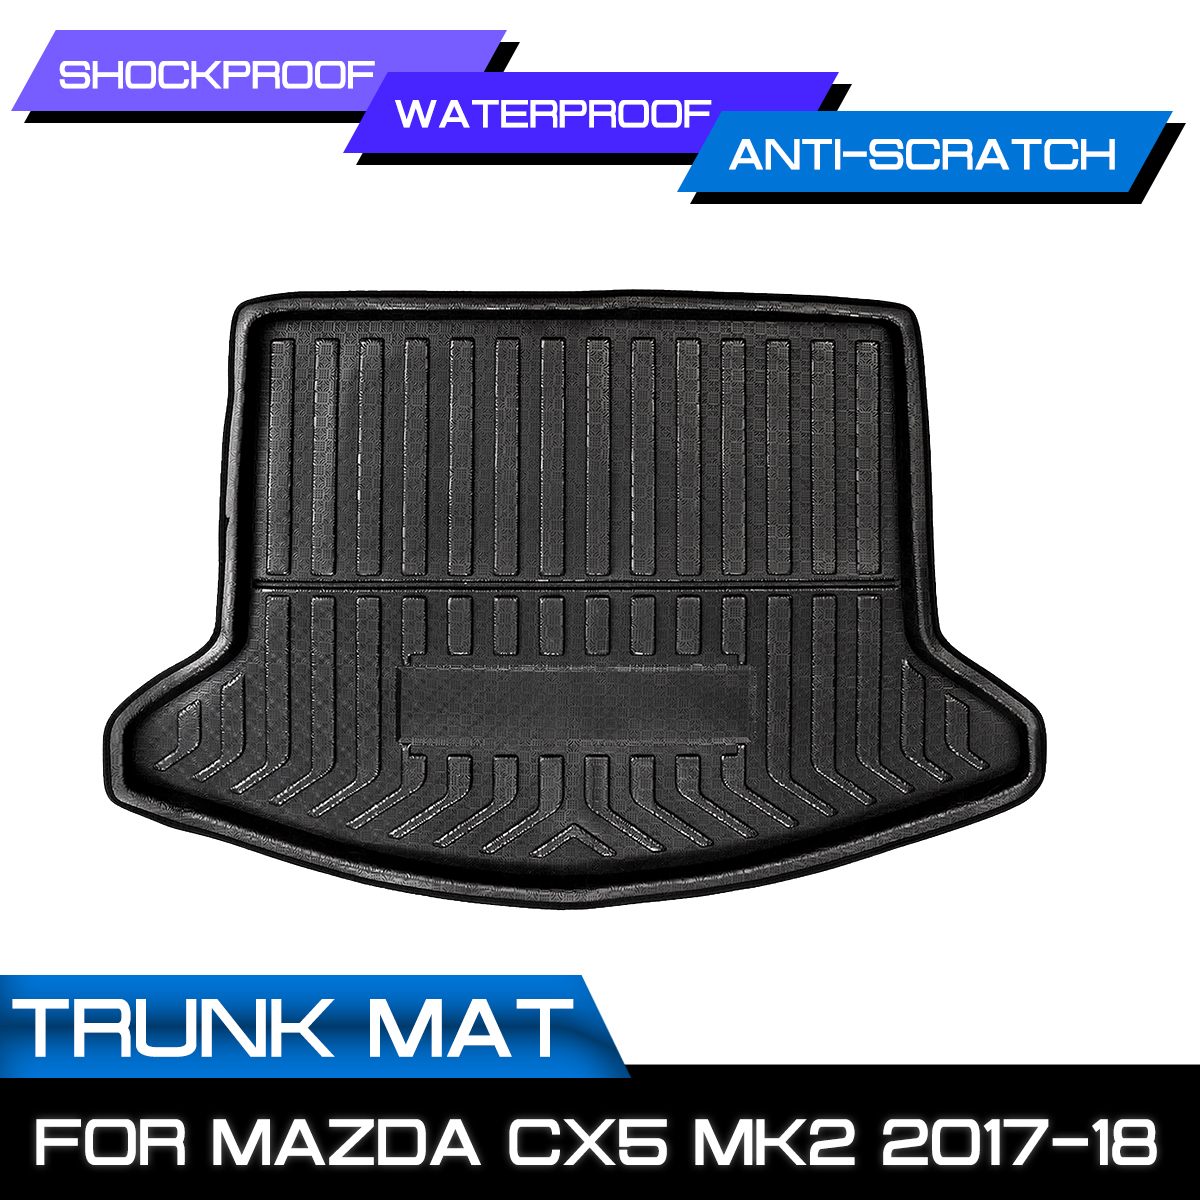 Rear Trunk Cargo Boot Liner For Mazda CX-5 CX5 MK2 2017 2018 Car Styling Interior Accessories Waterproof Mat Shockproof